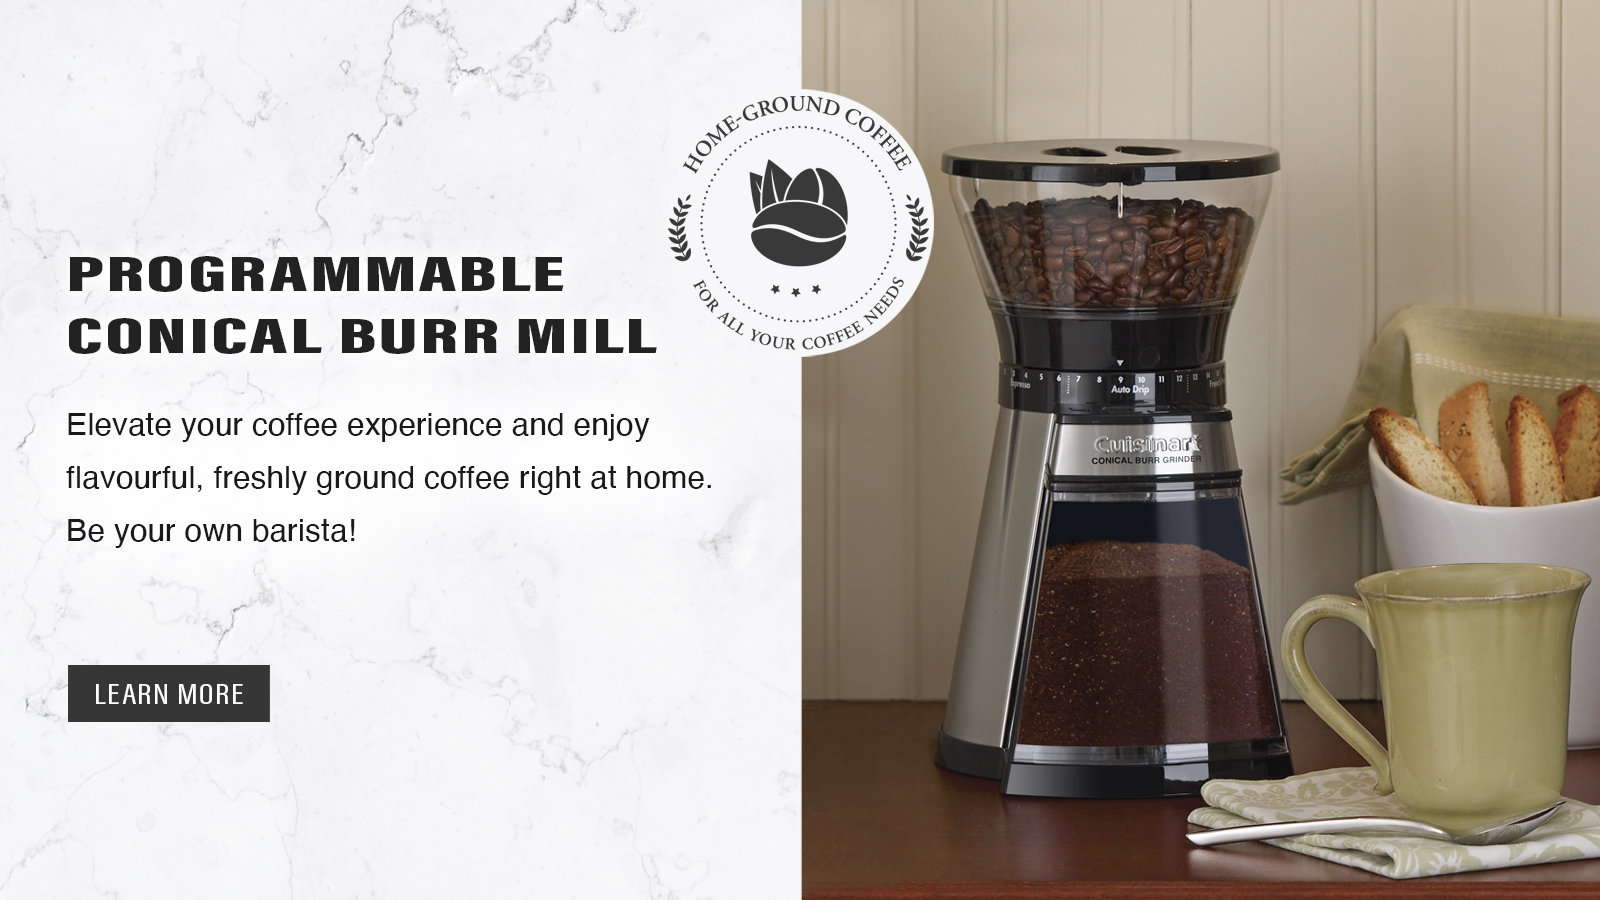 Programmable Conical Burr Mill